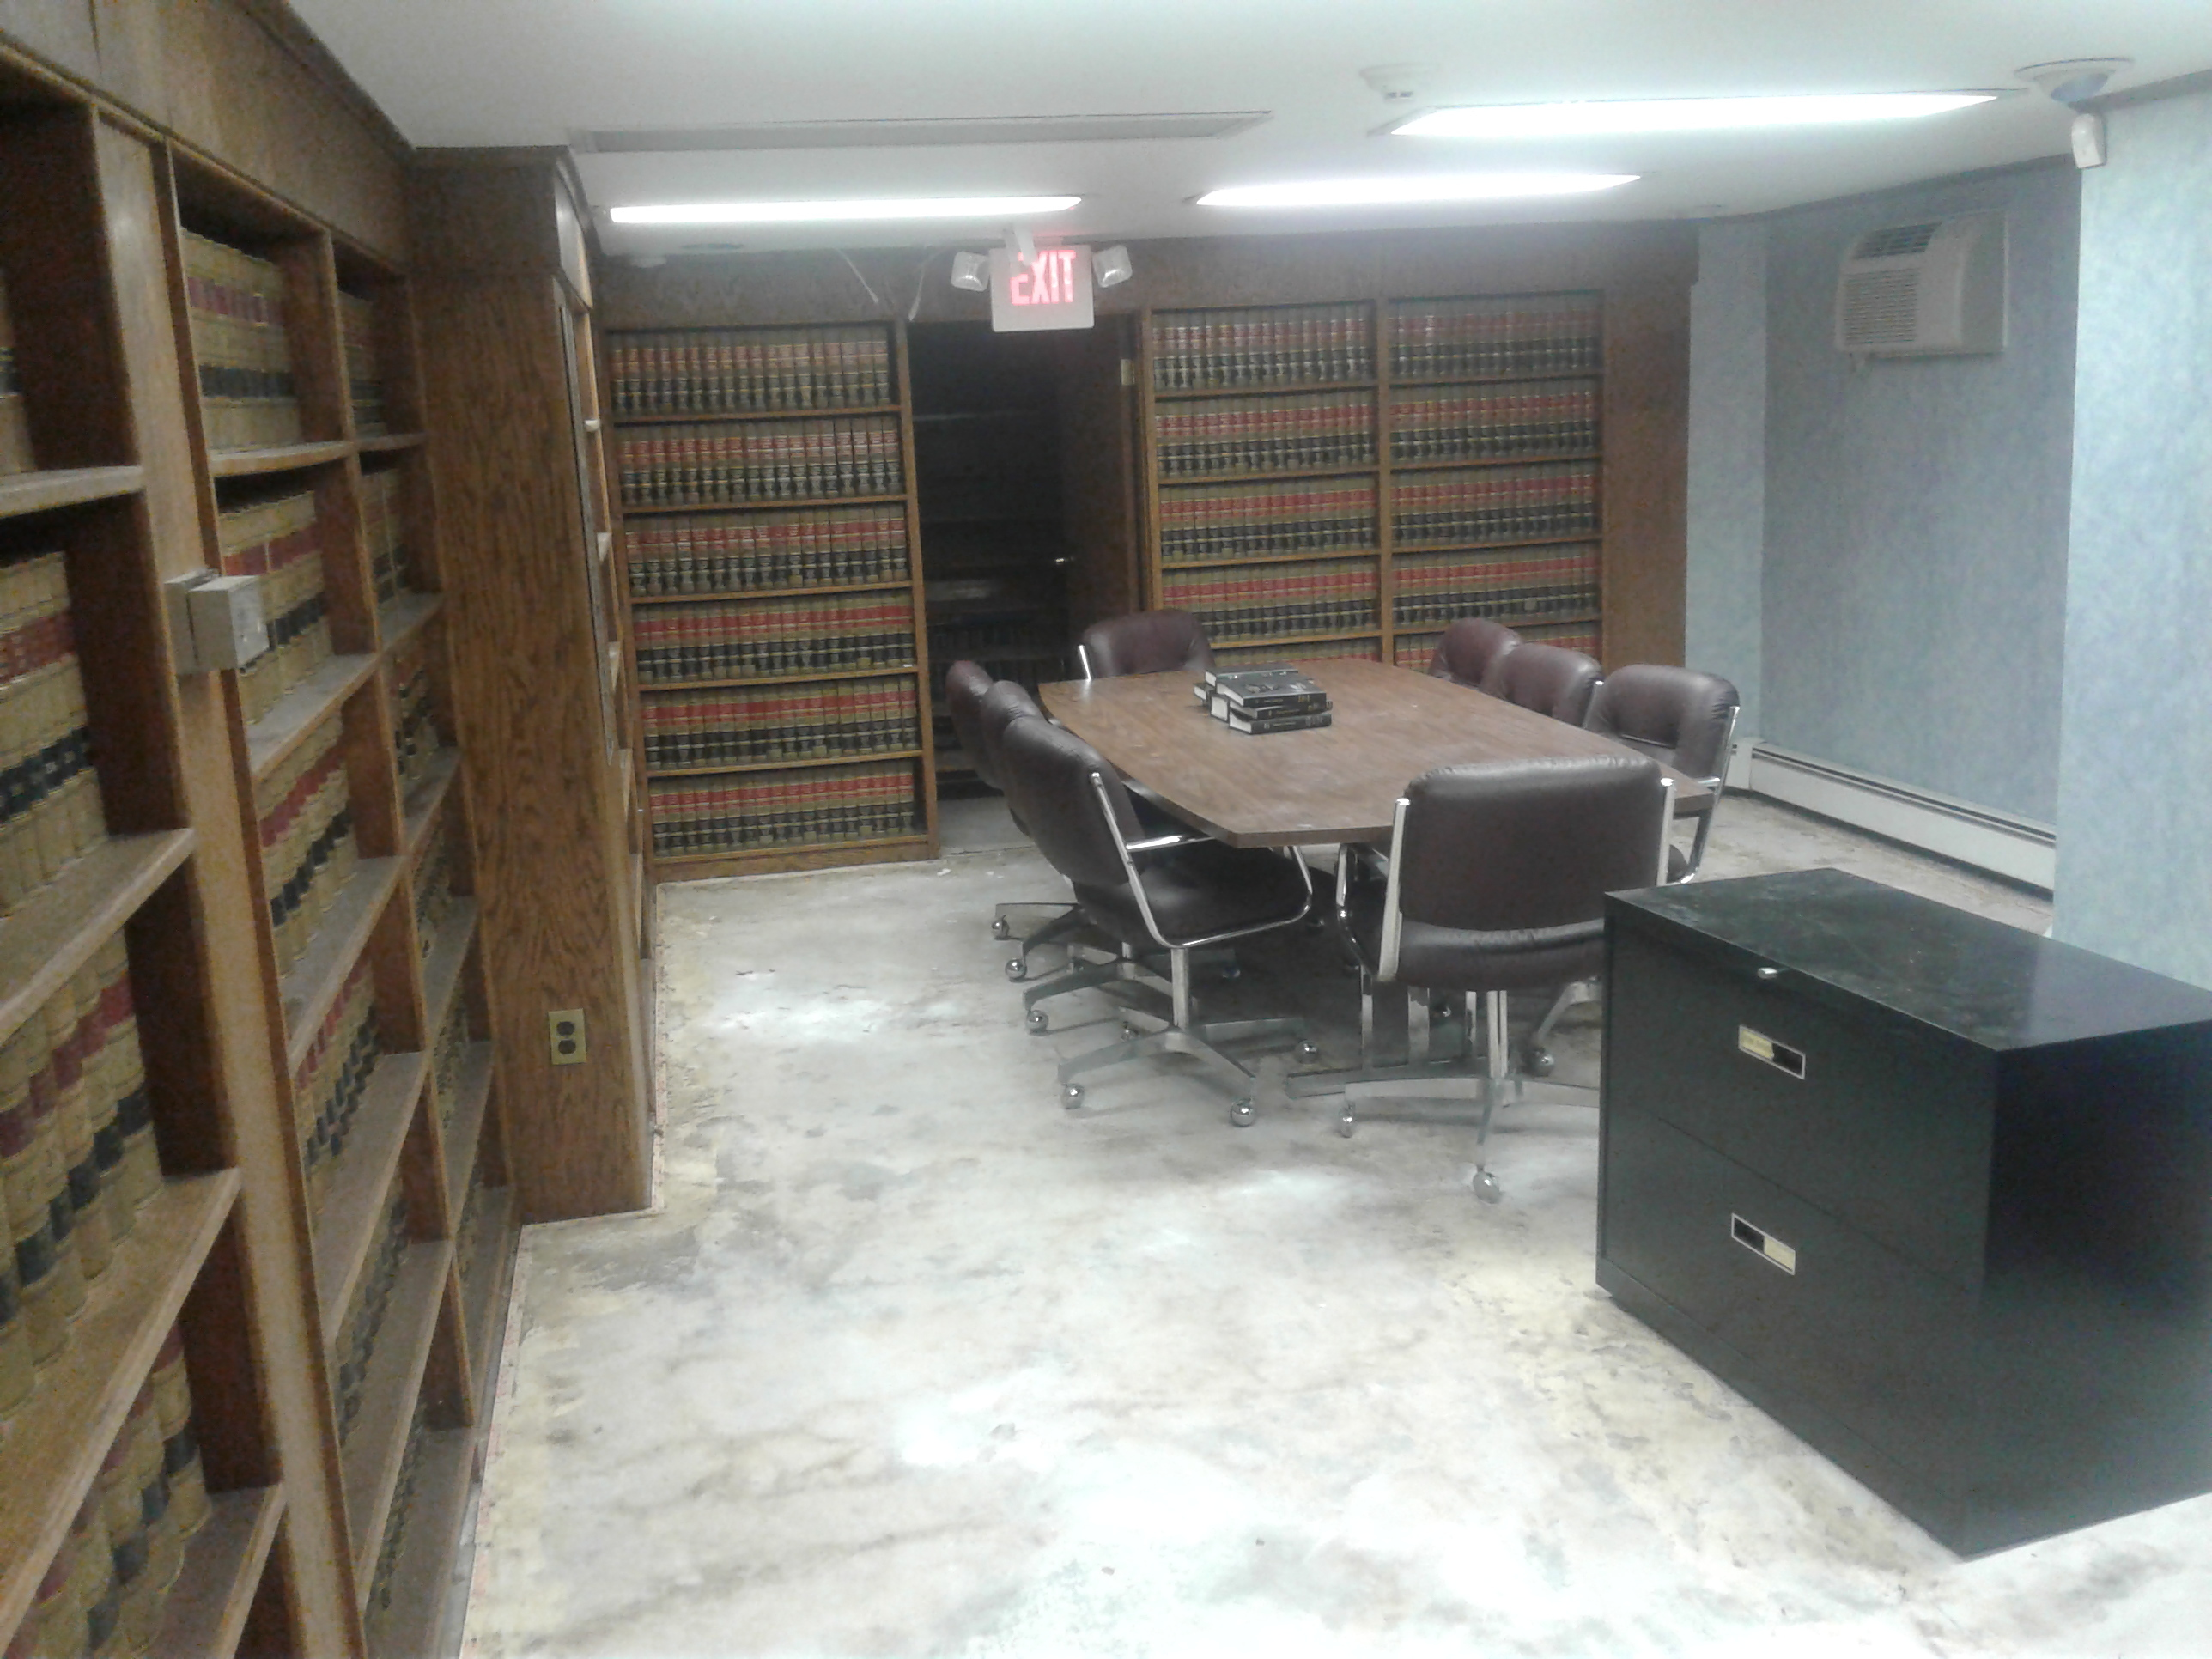 197-Merrick-Conference-or-Library